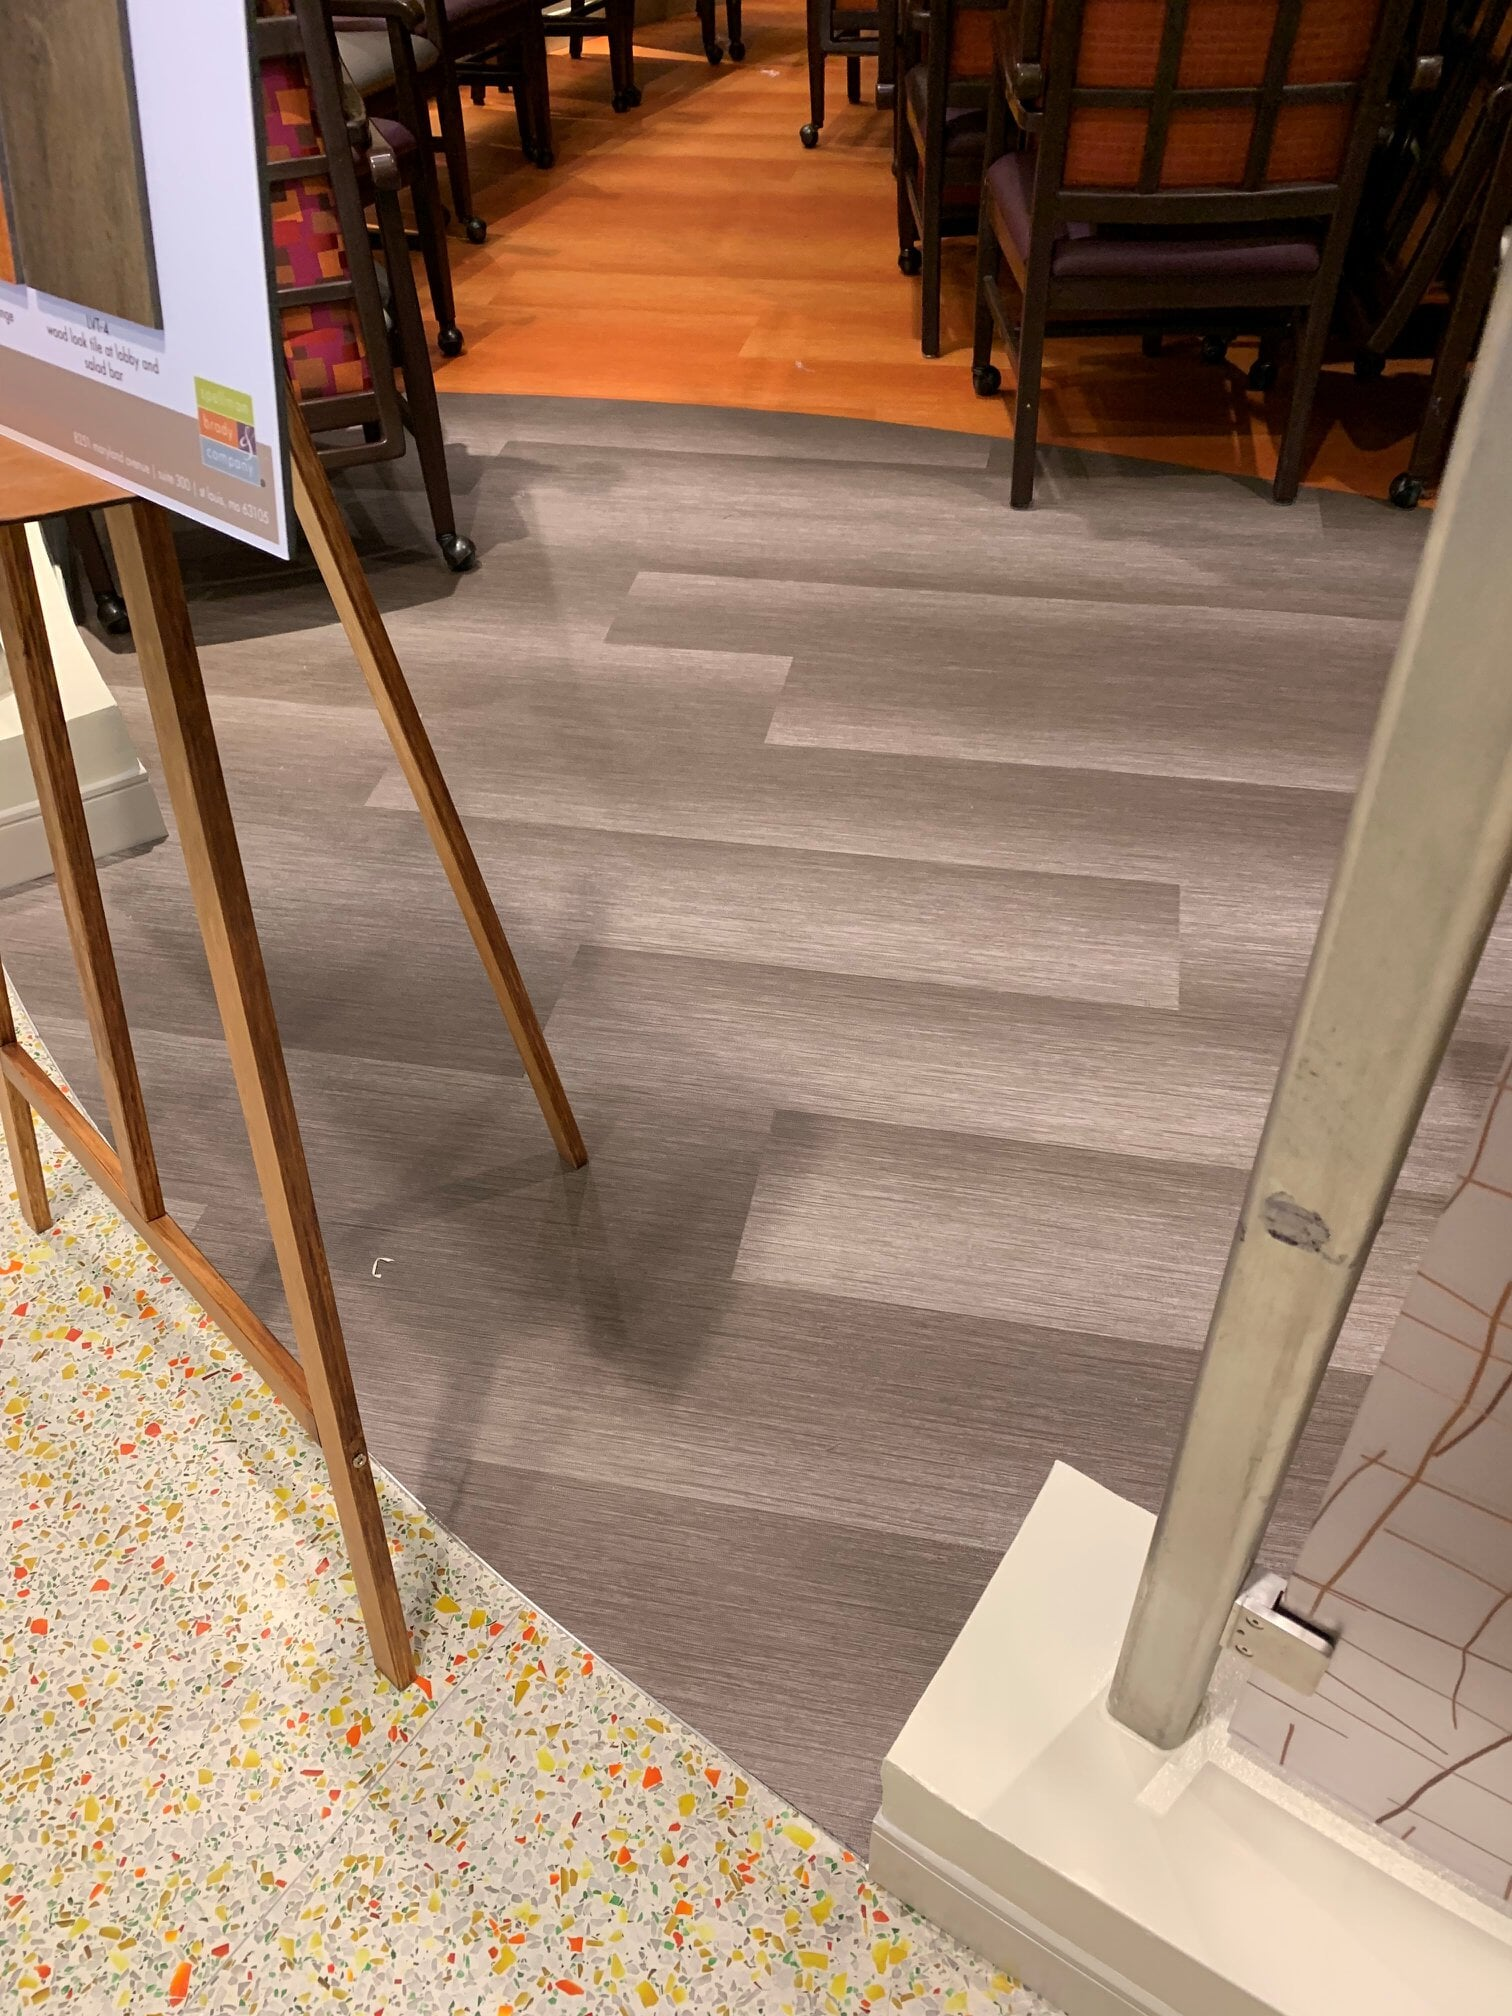 Vinyl plank flooring from StarFloors in Allen, TX